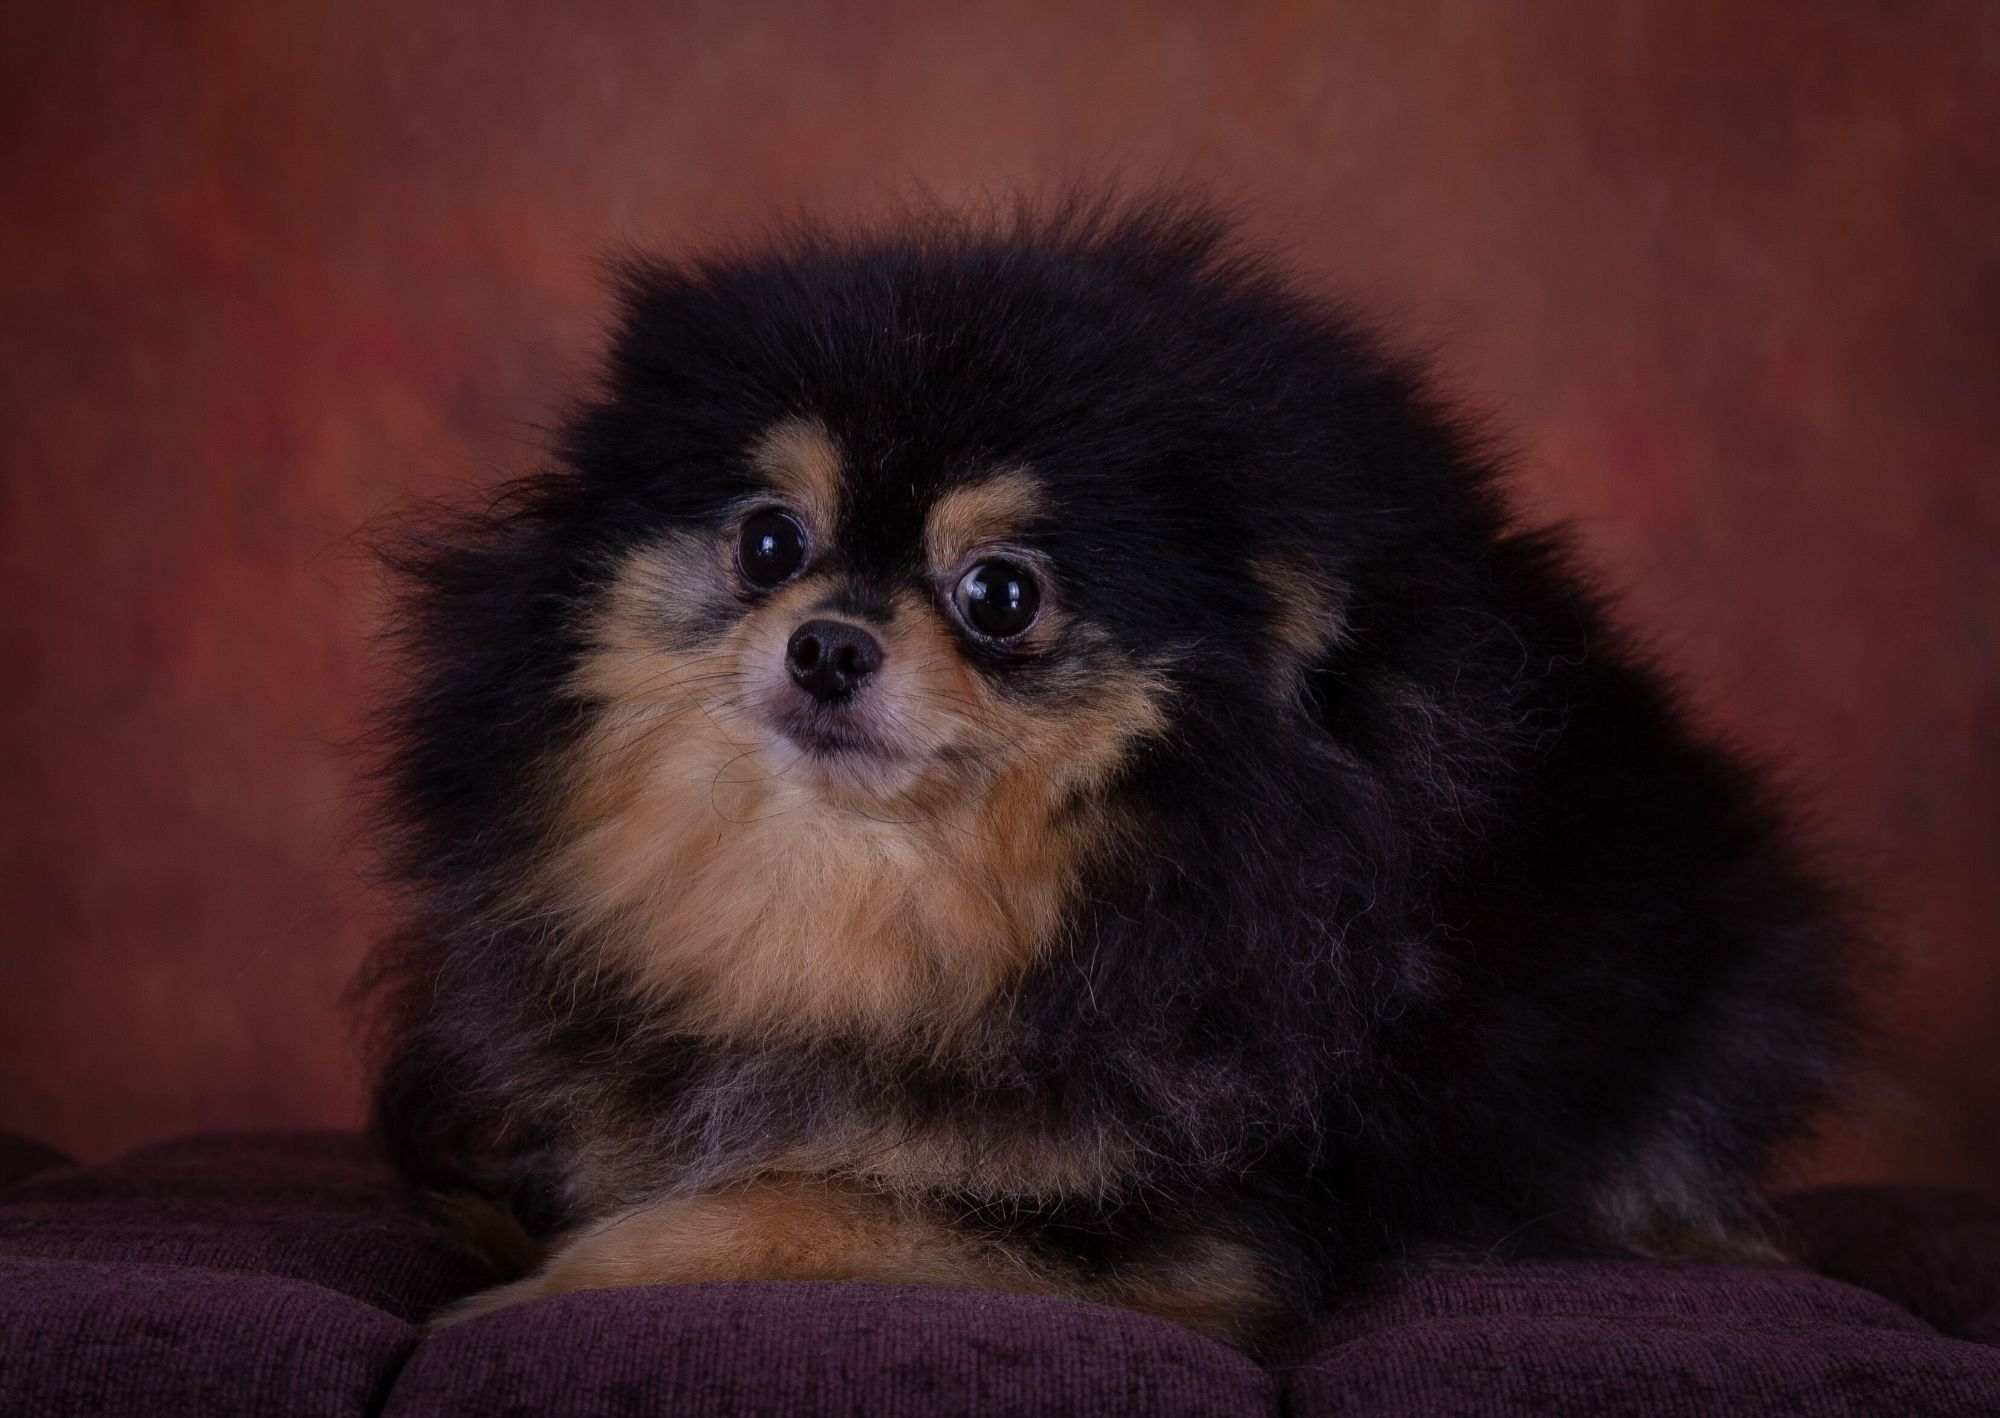 Altina's Rumba - Black and Tan Pomeranian